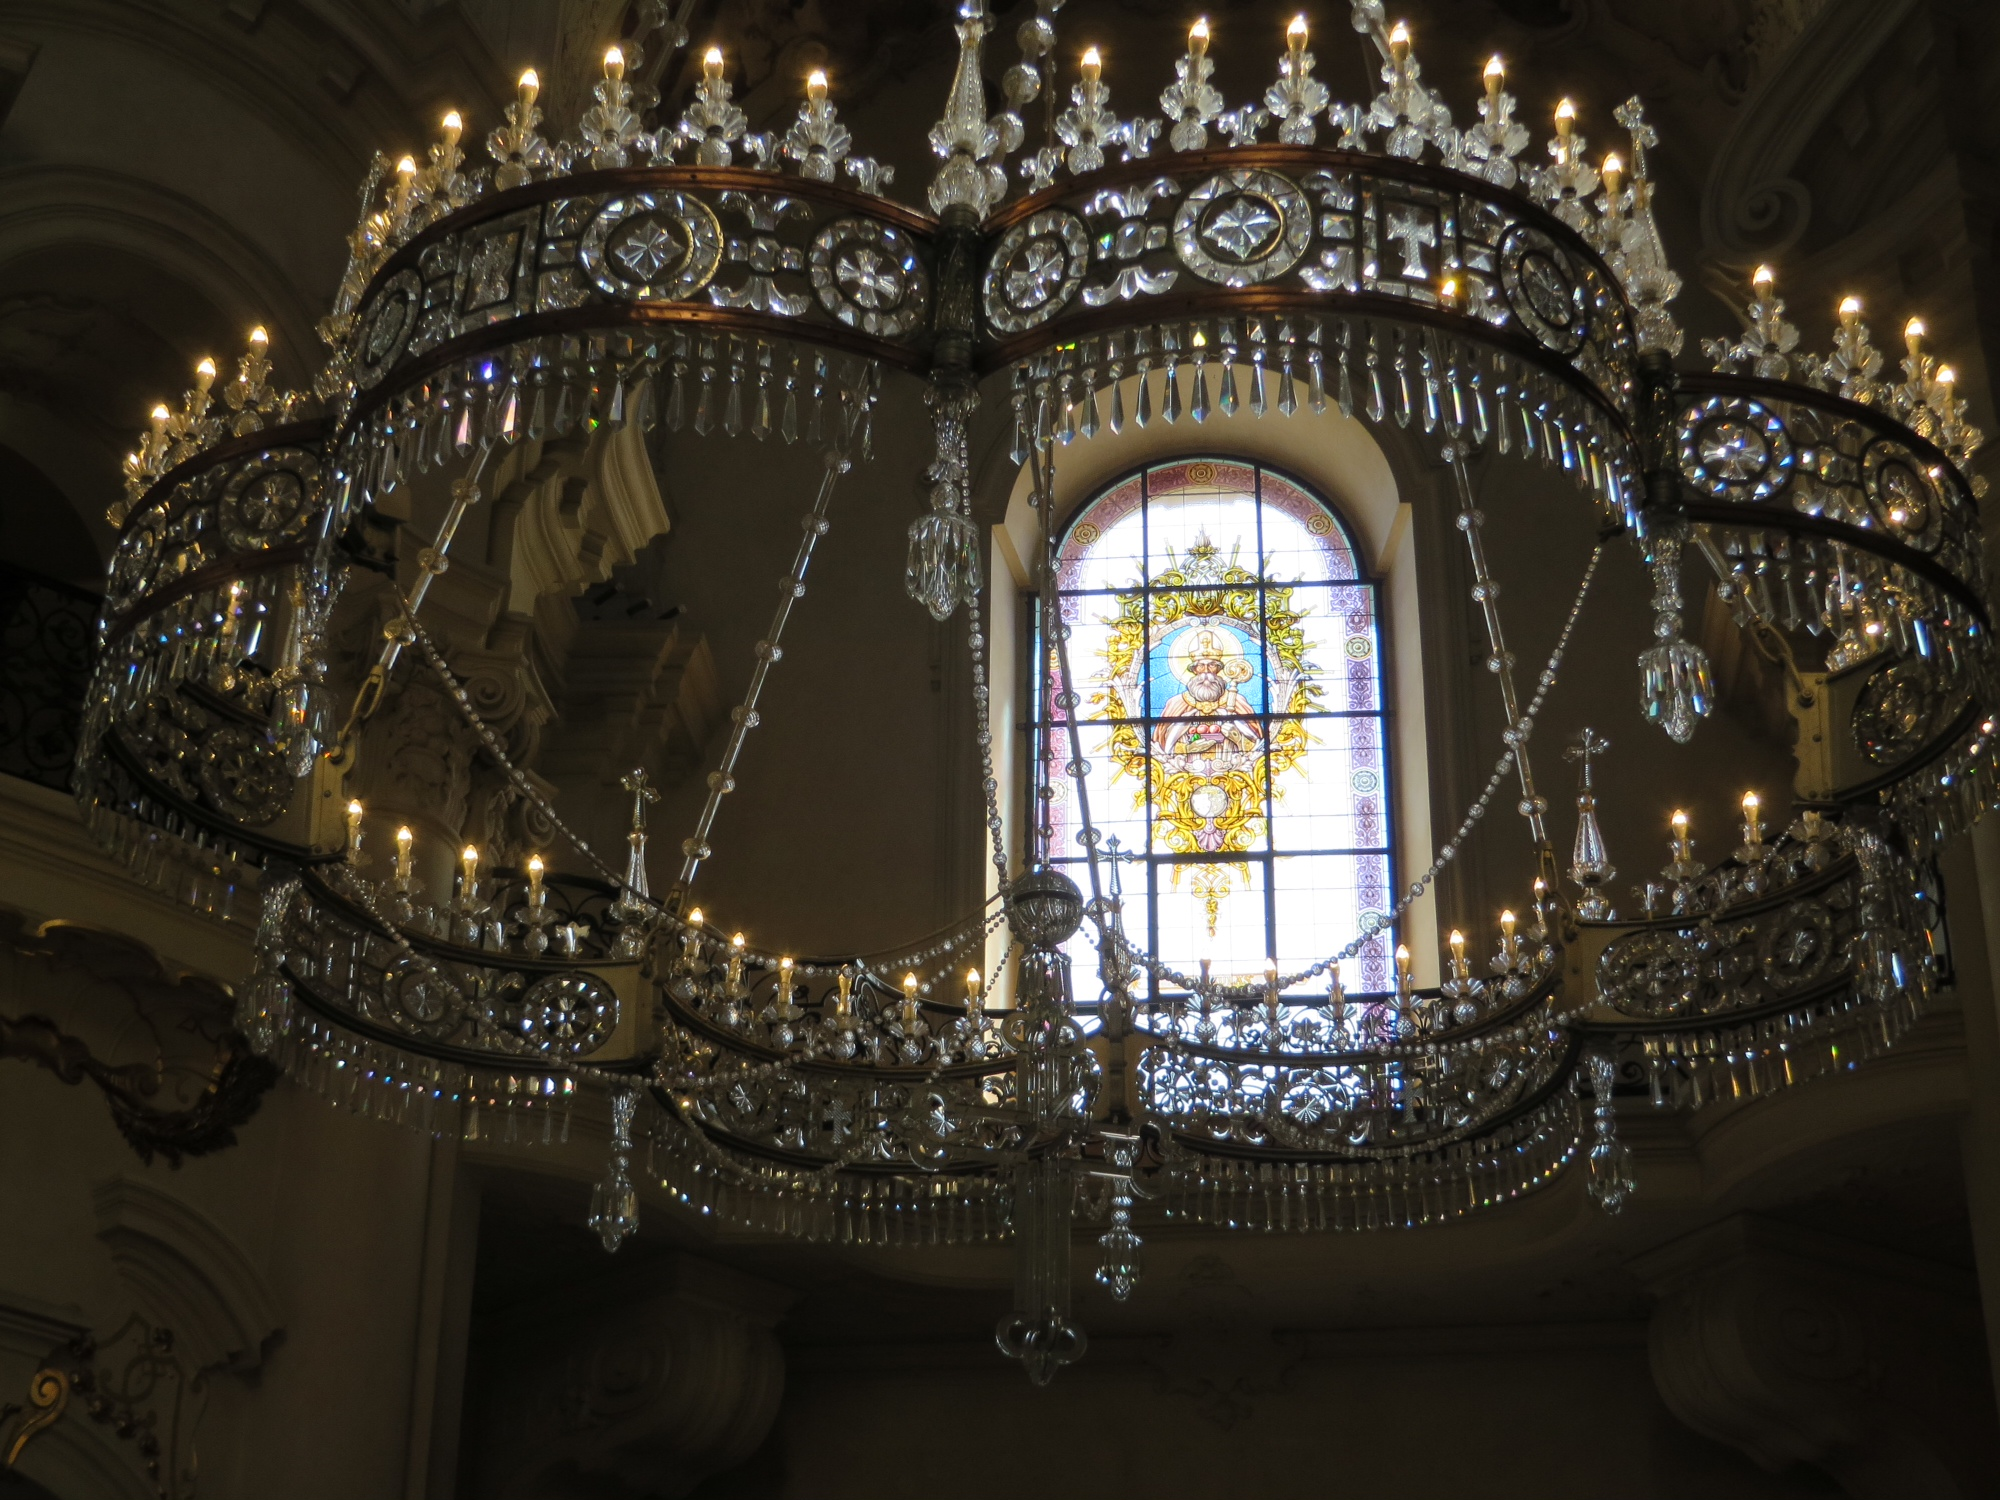 chandelier and altar window, st. nicholas church, prague